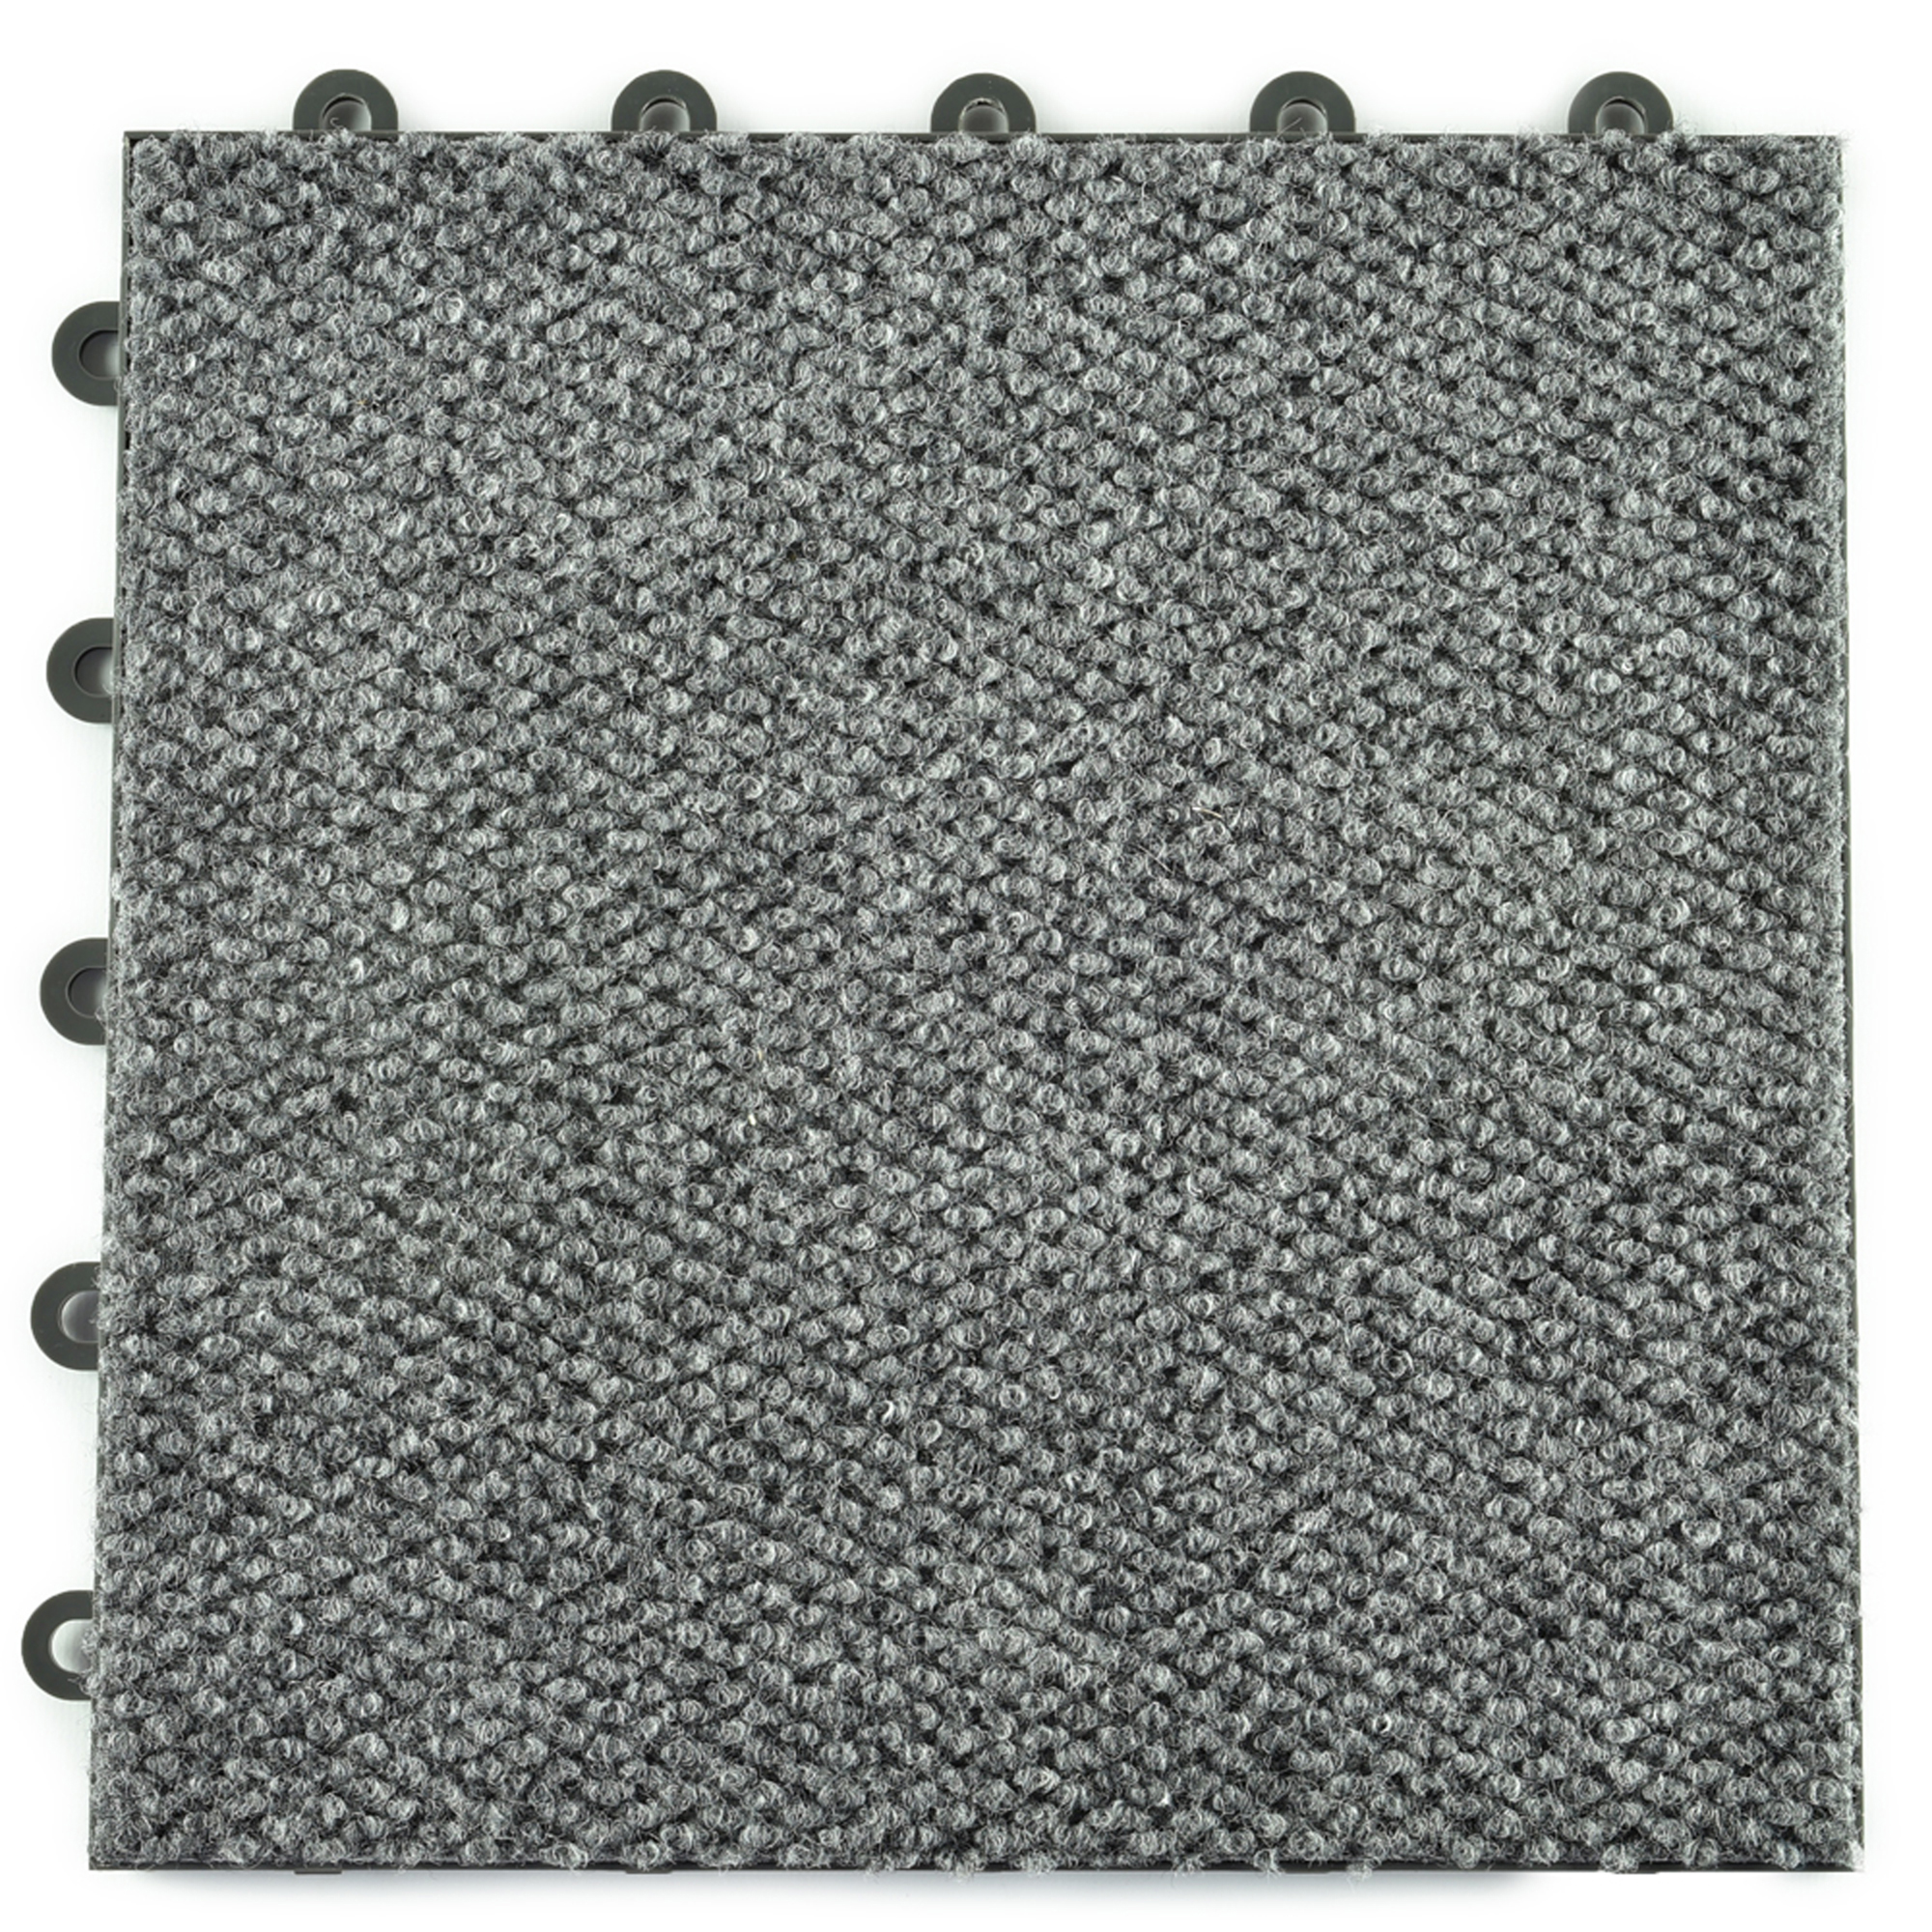 Greatmats Snap Together Raised Carpet Tile 12-1/8 in. x 12-1/8 in. x 5/8 in. Gray 20 Pack